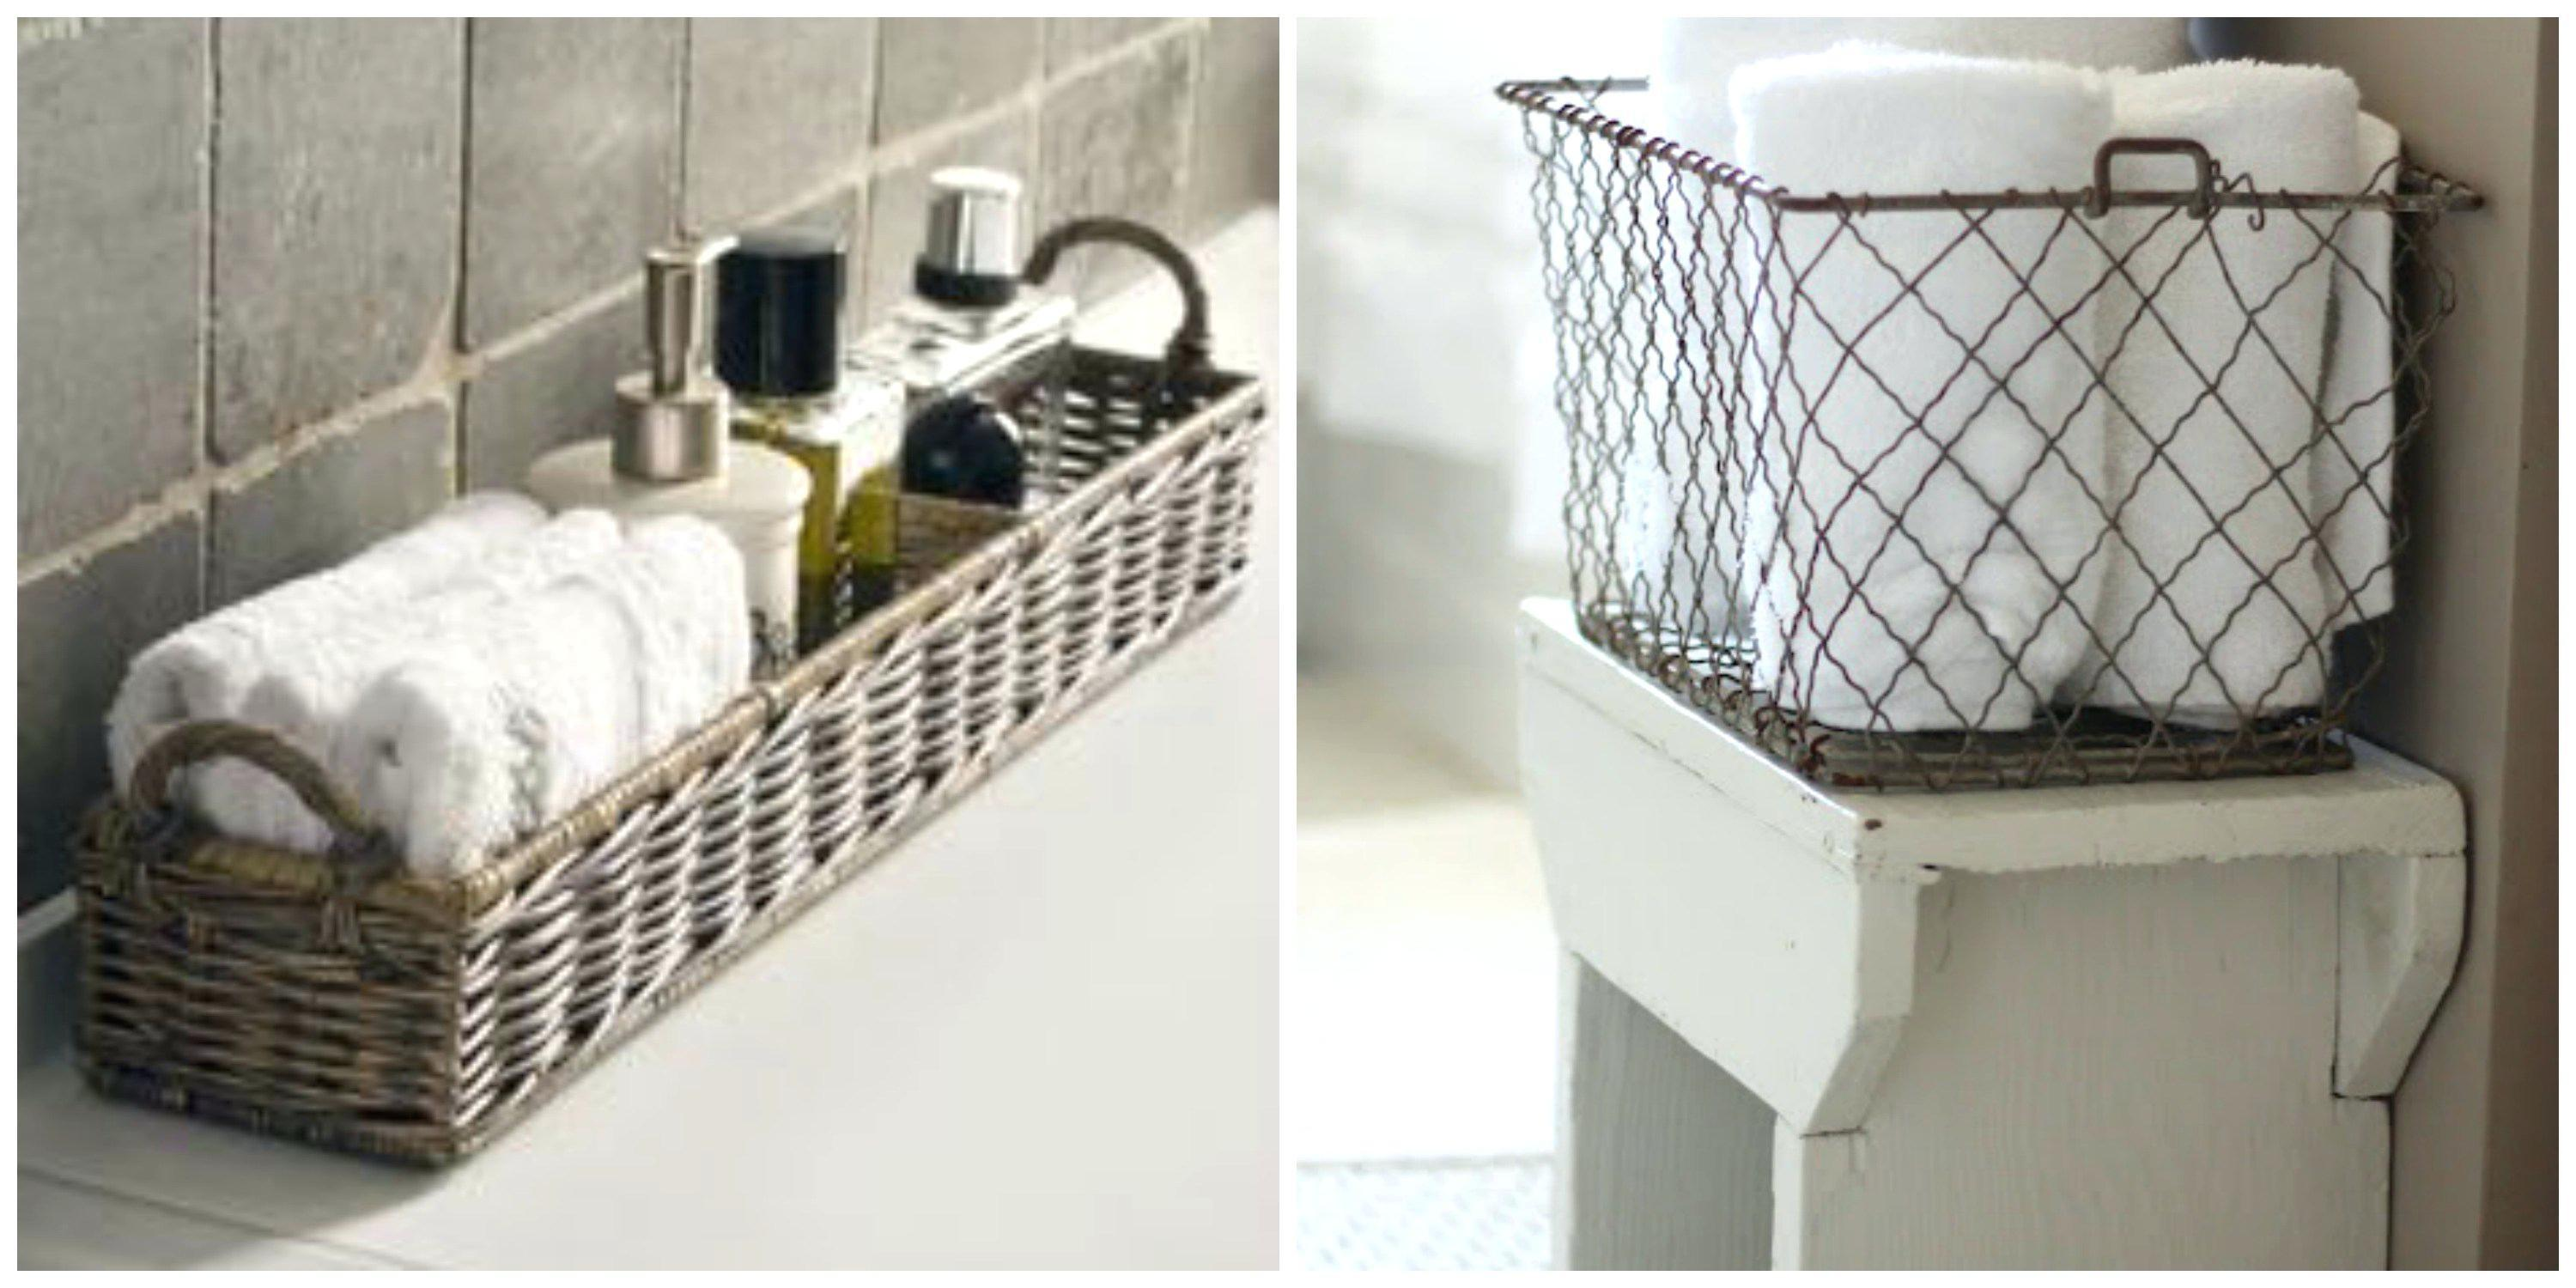 Bars Towel Plush Design Ideas Bathroom Basket Guest